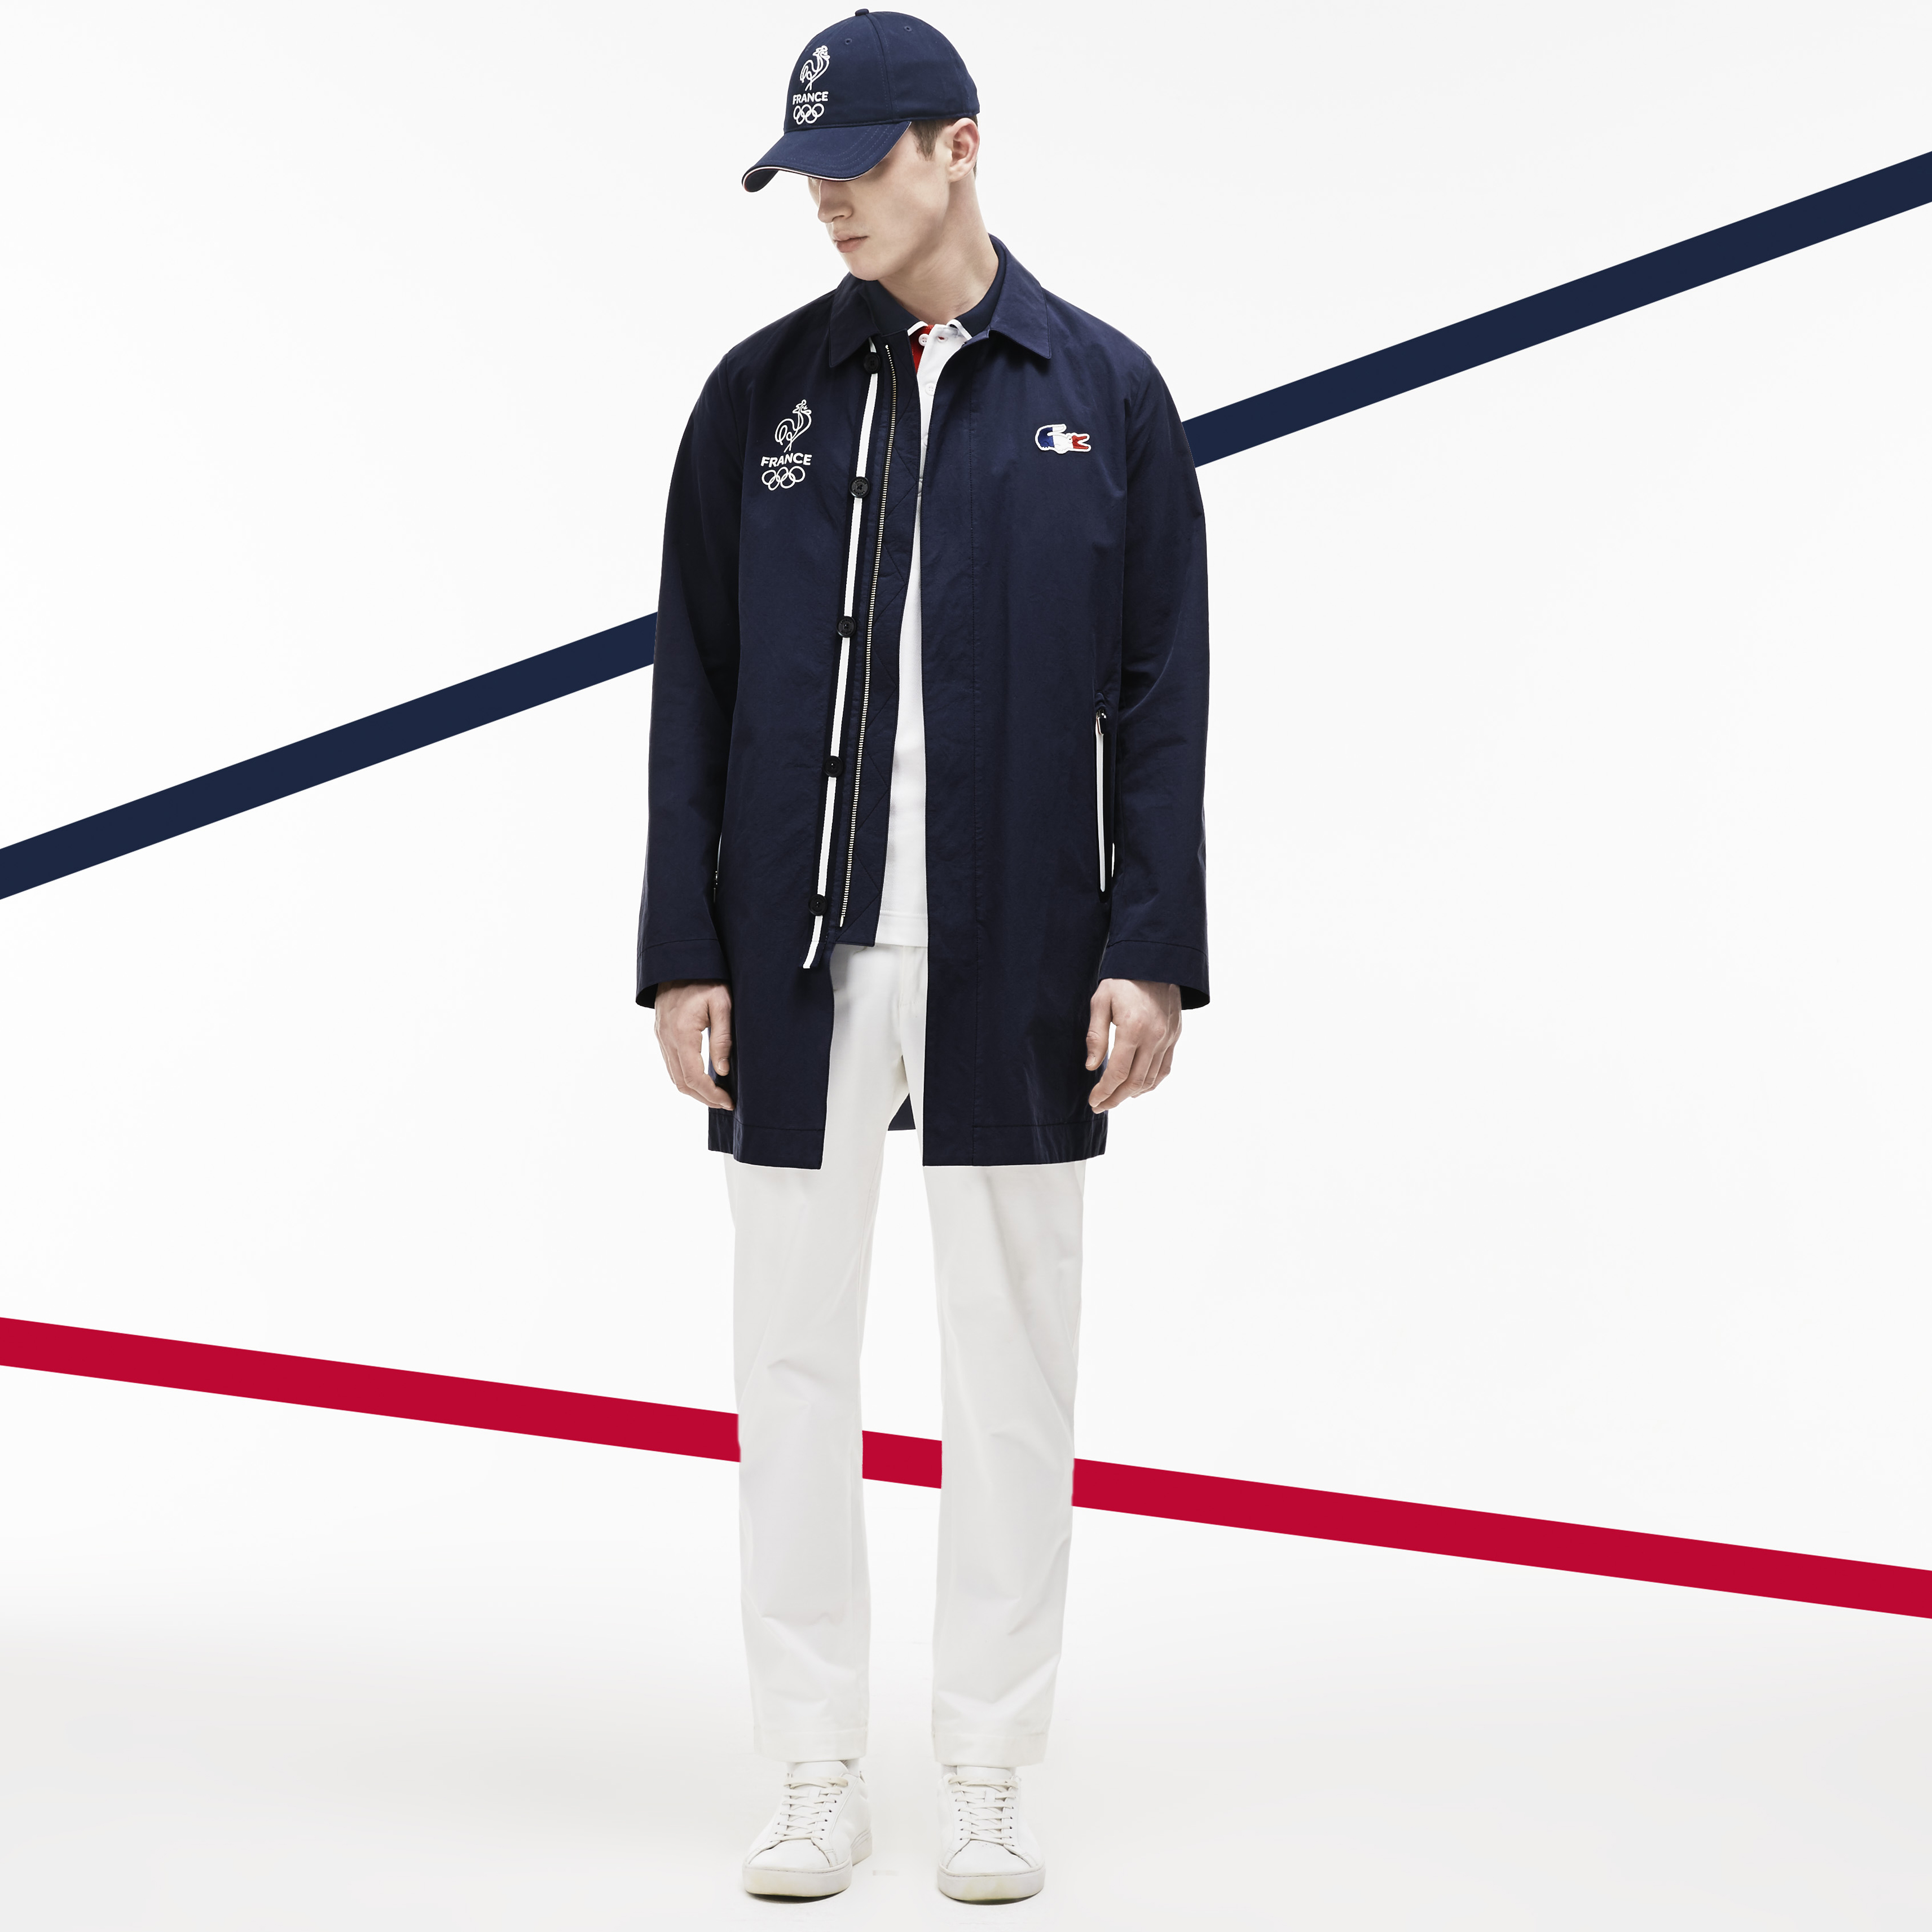 cf0215700ec03 Lacoste Olympic Collection Rio Olympic Games Crash Magazine ...